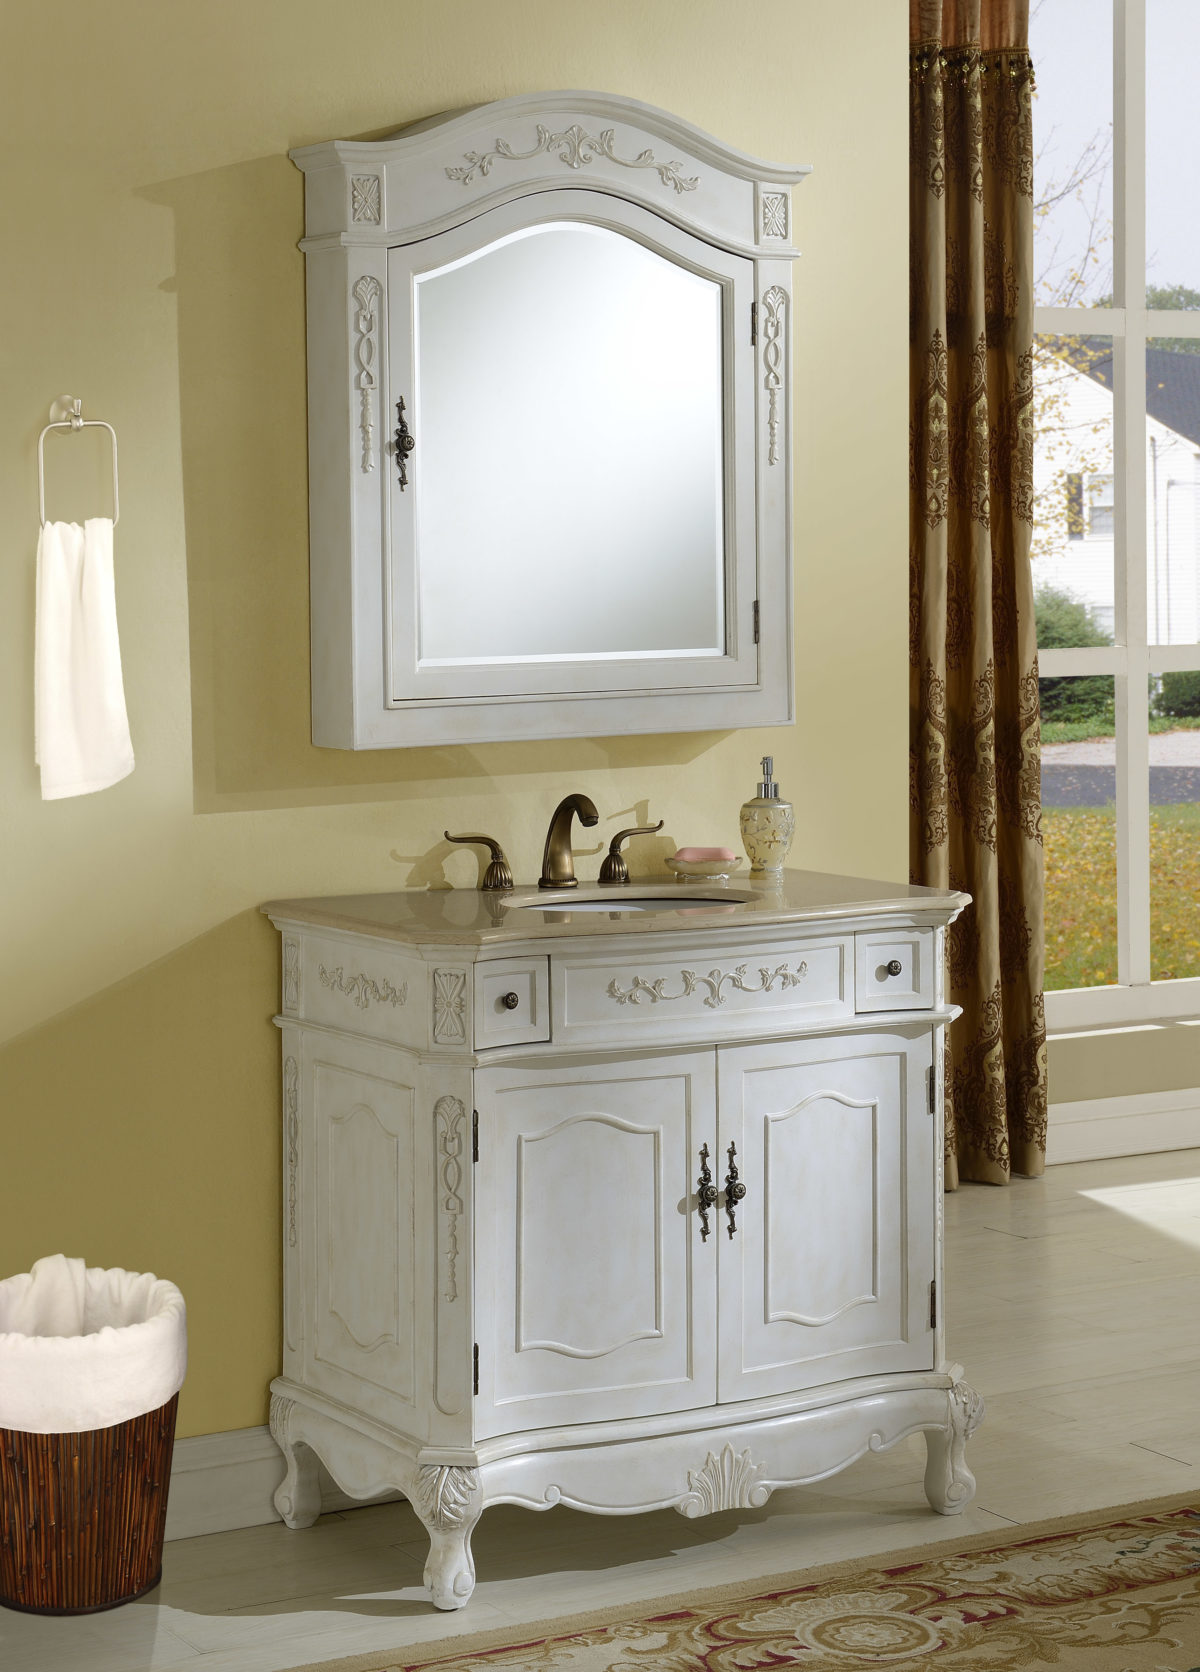 """36"""" Antique White Finish Vanity with Mirror, Med Cab, and Linen Cabinet Options"""